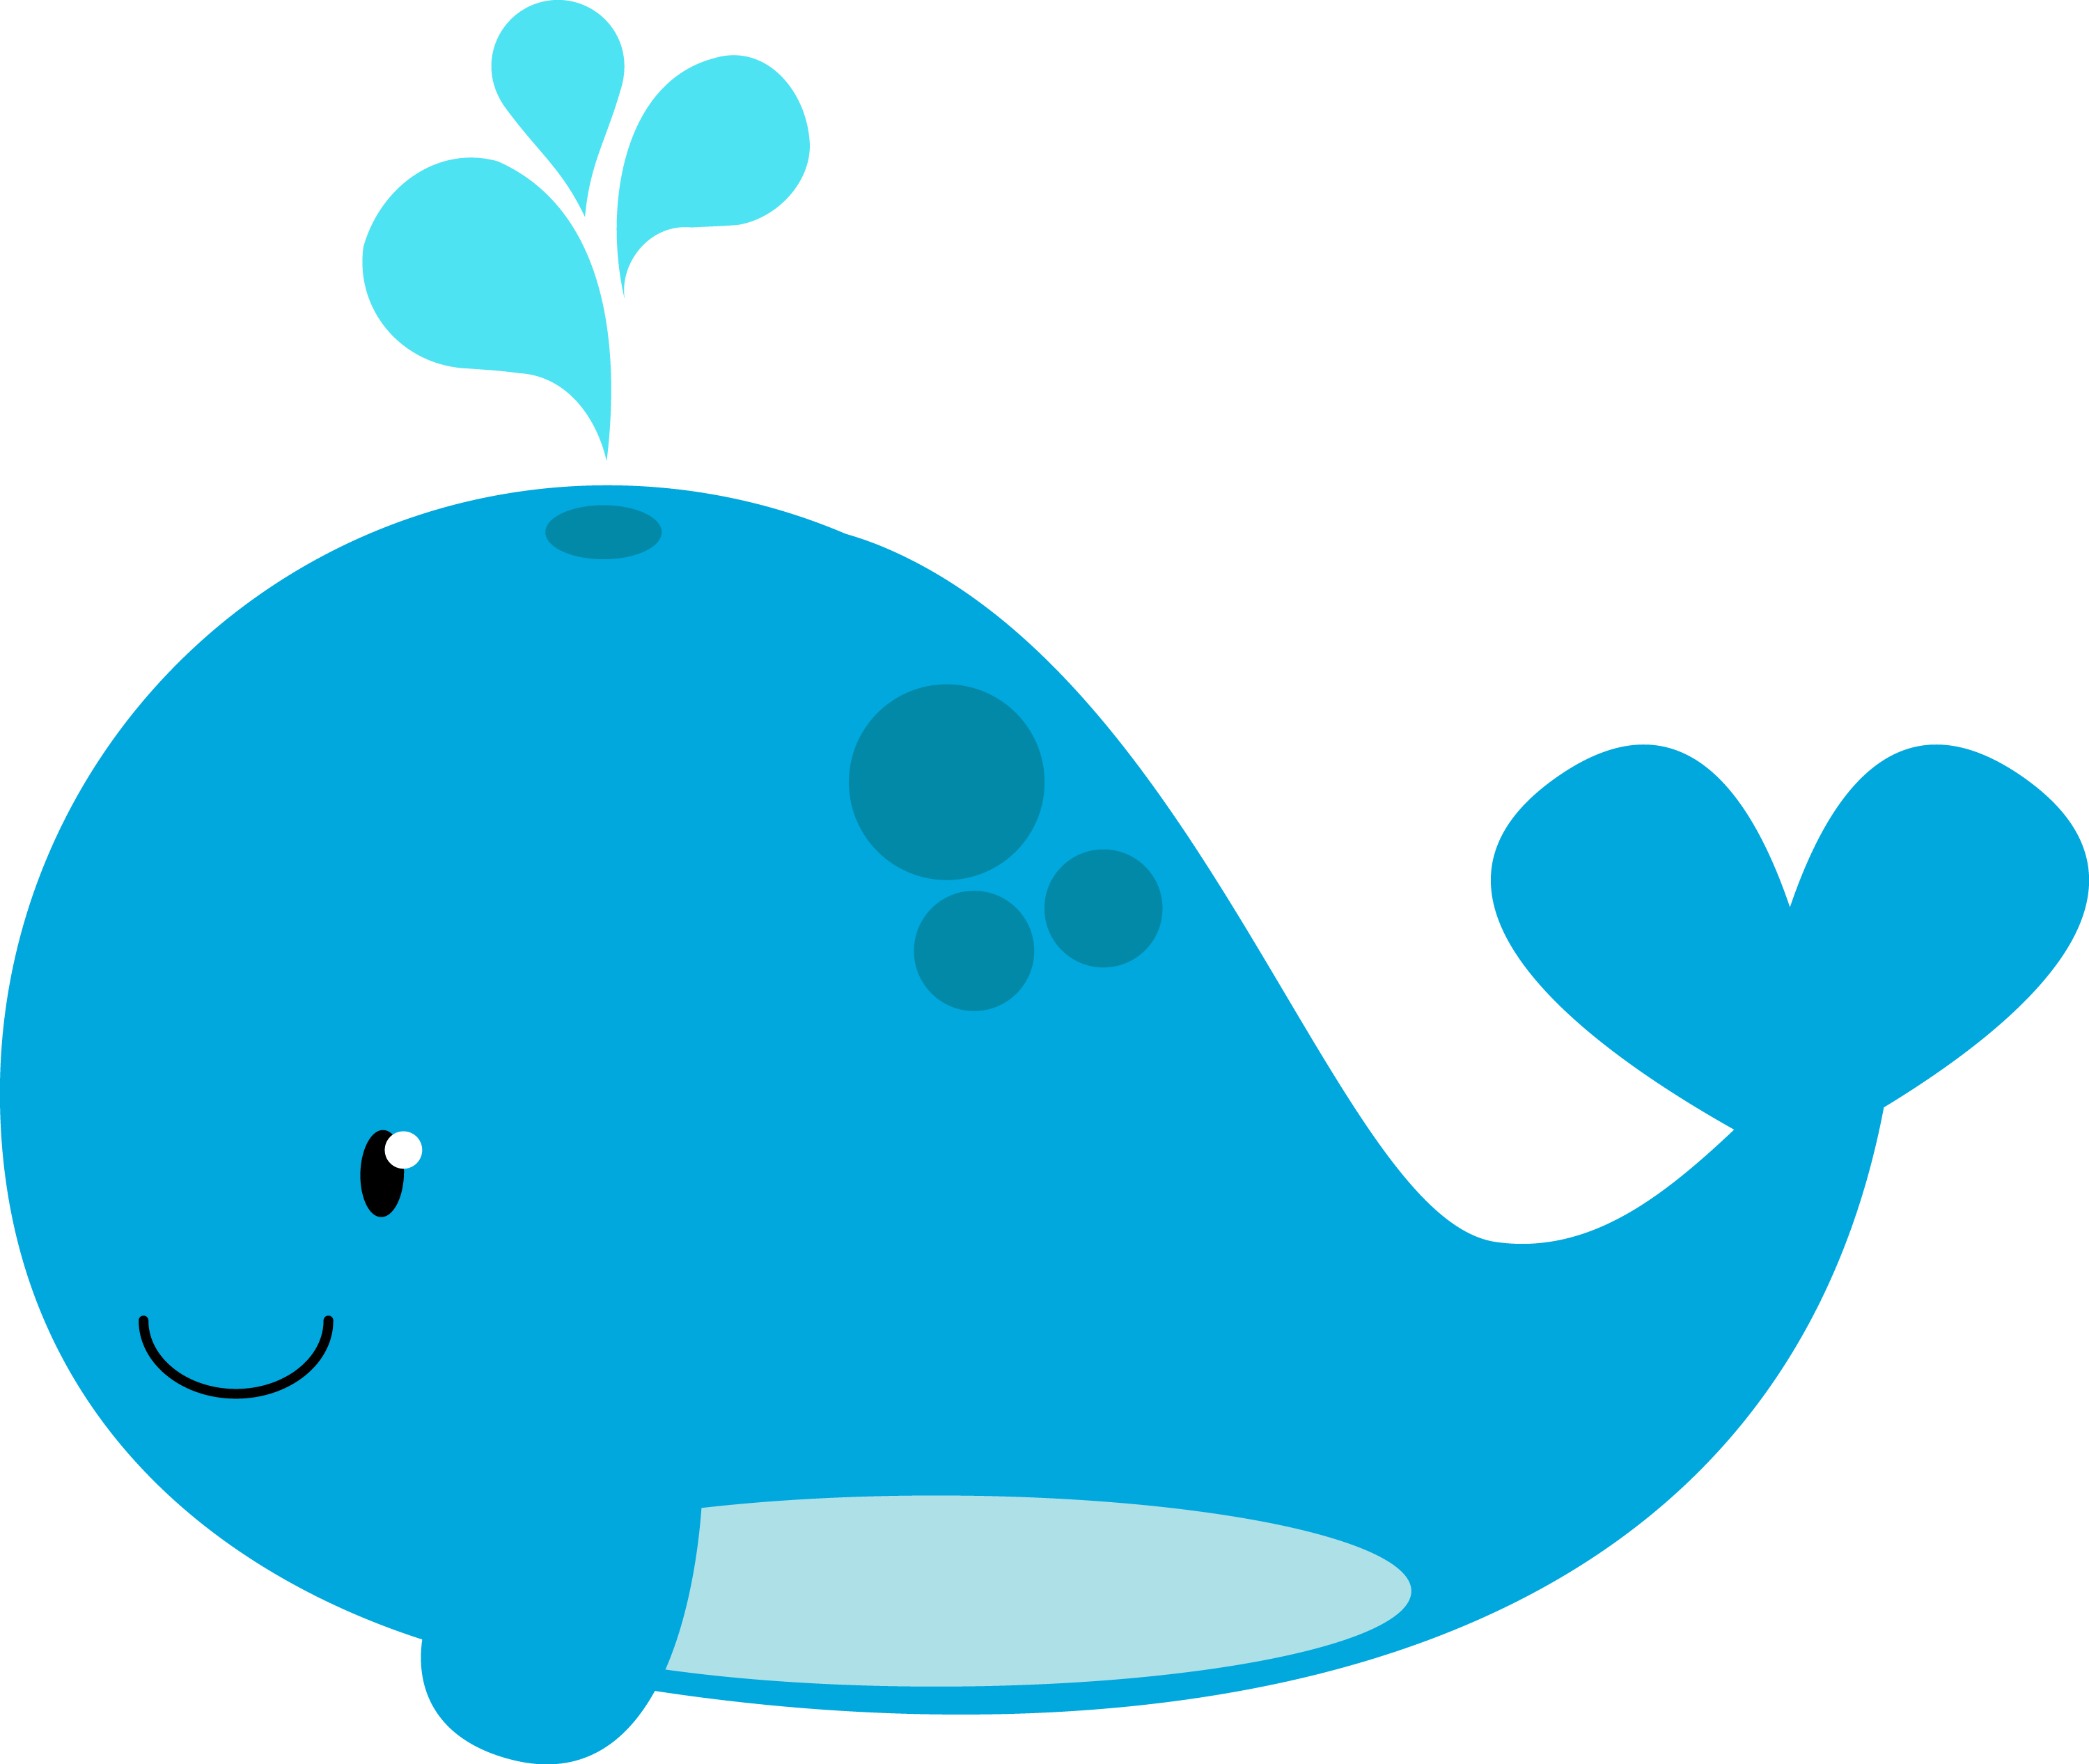 pin by veronica lina on stencils pinterest clip art babies and rh pinterest com whale clip art pictures whale clip art black and white